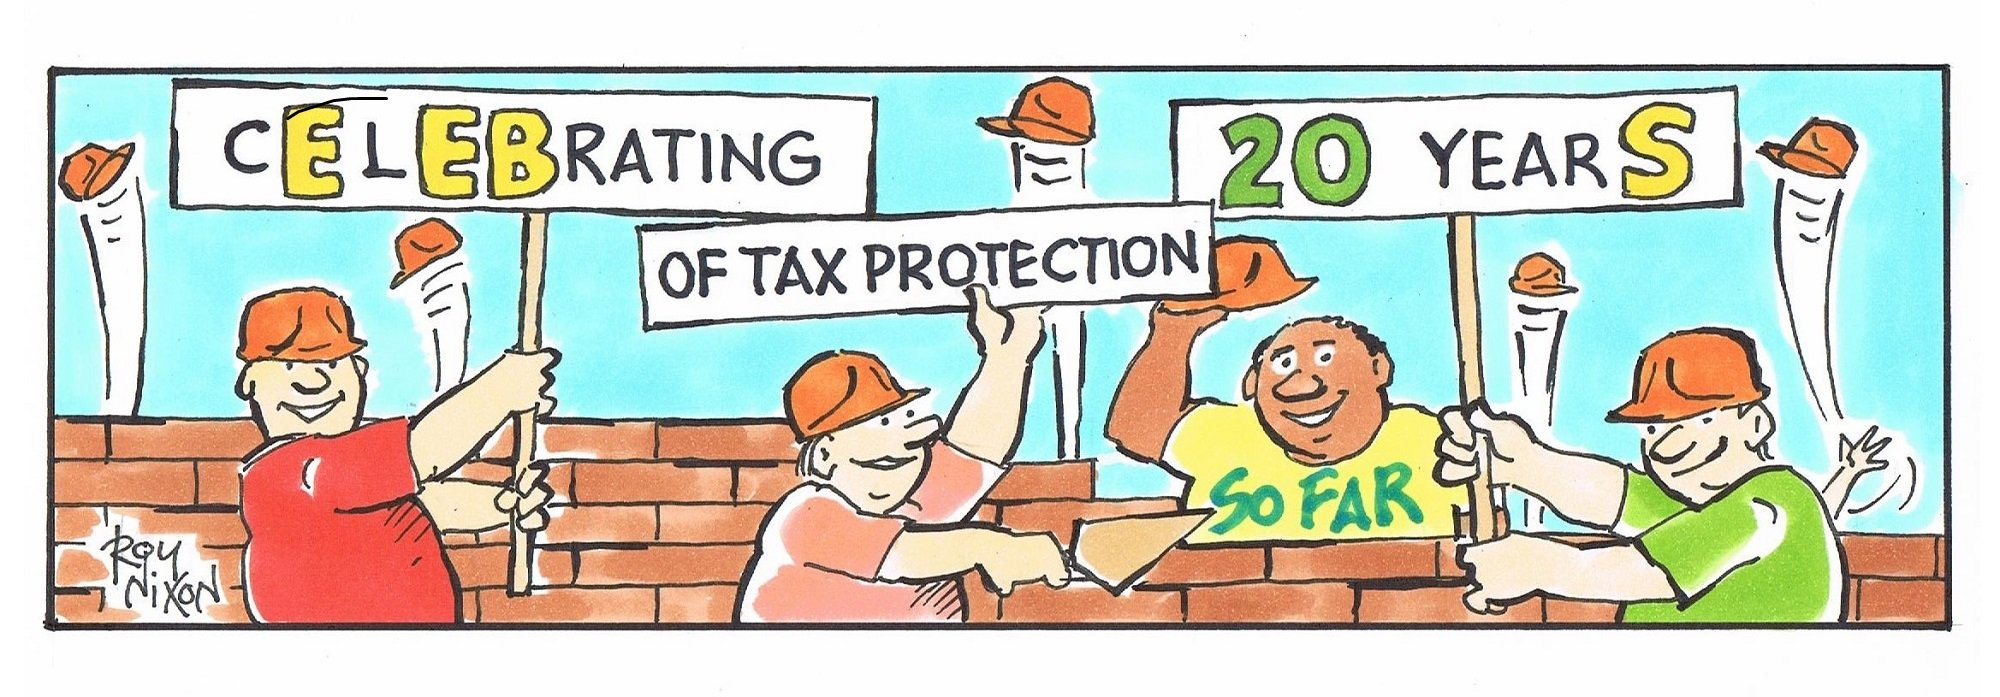 EEBS Celebrate 20 Years of Tax Protection